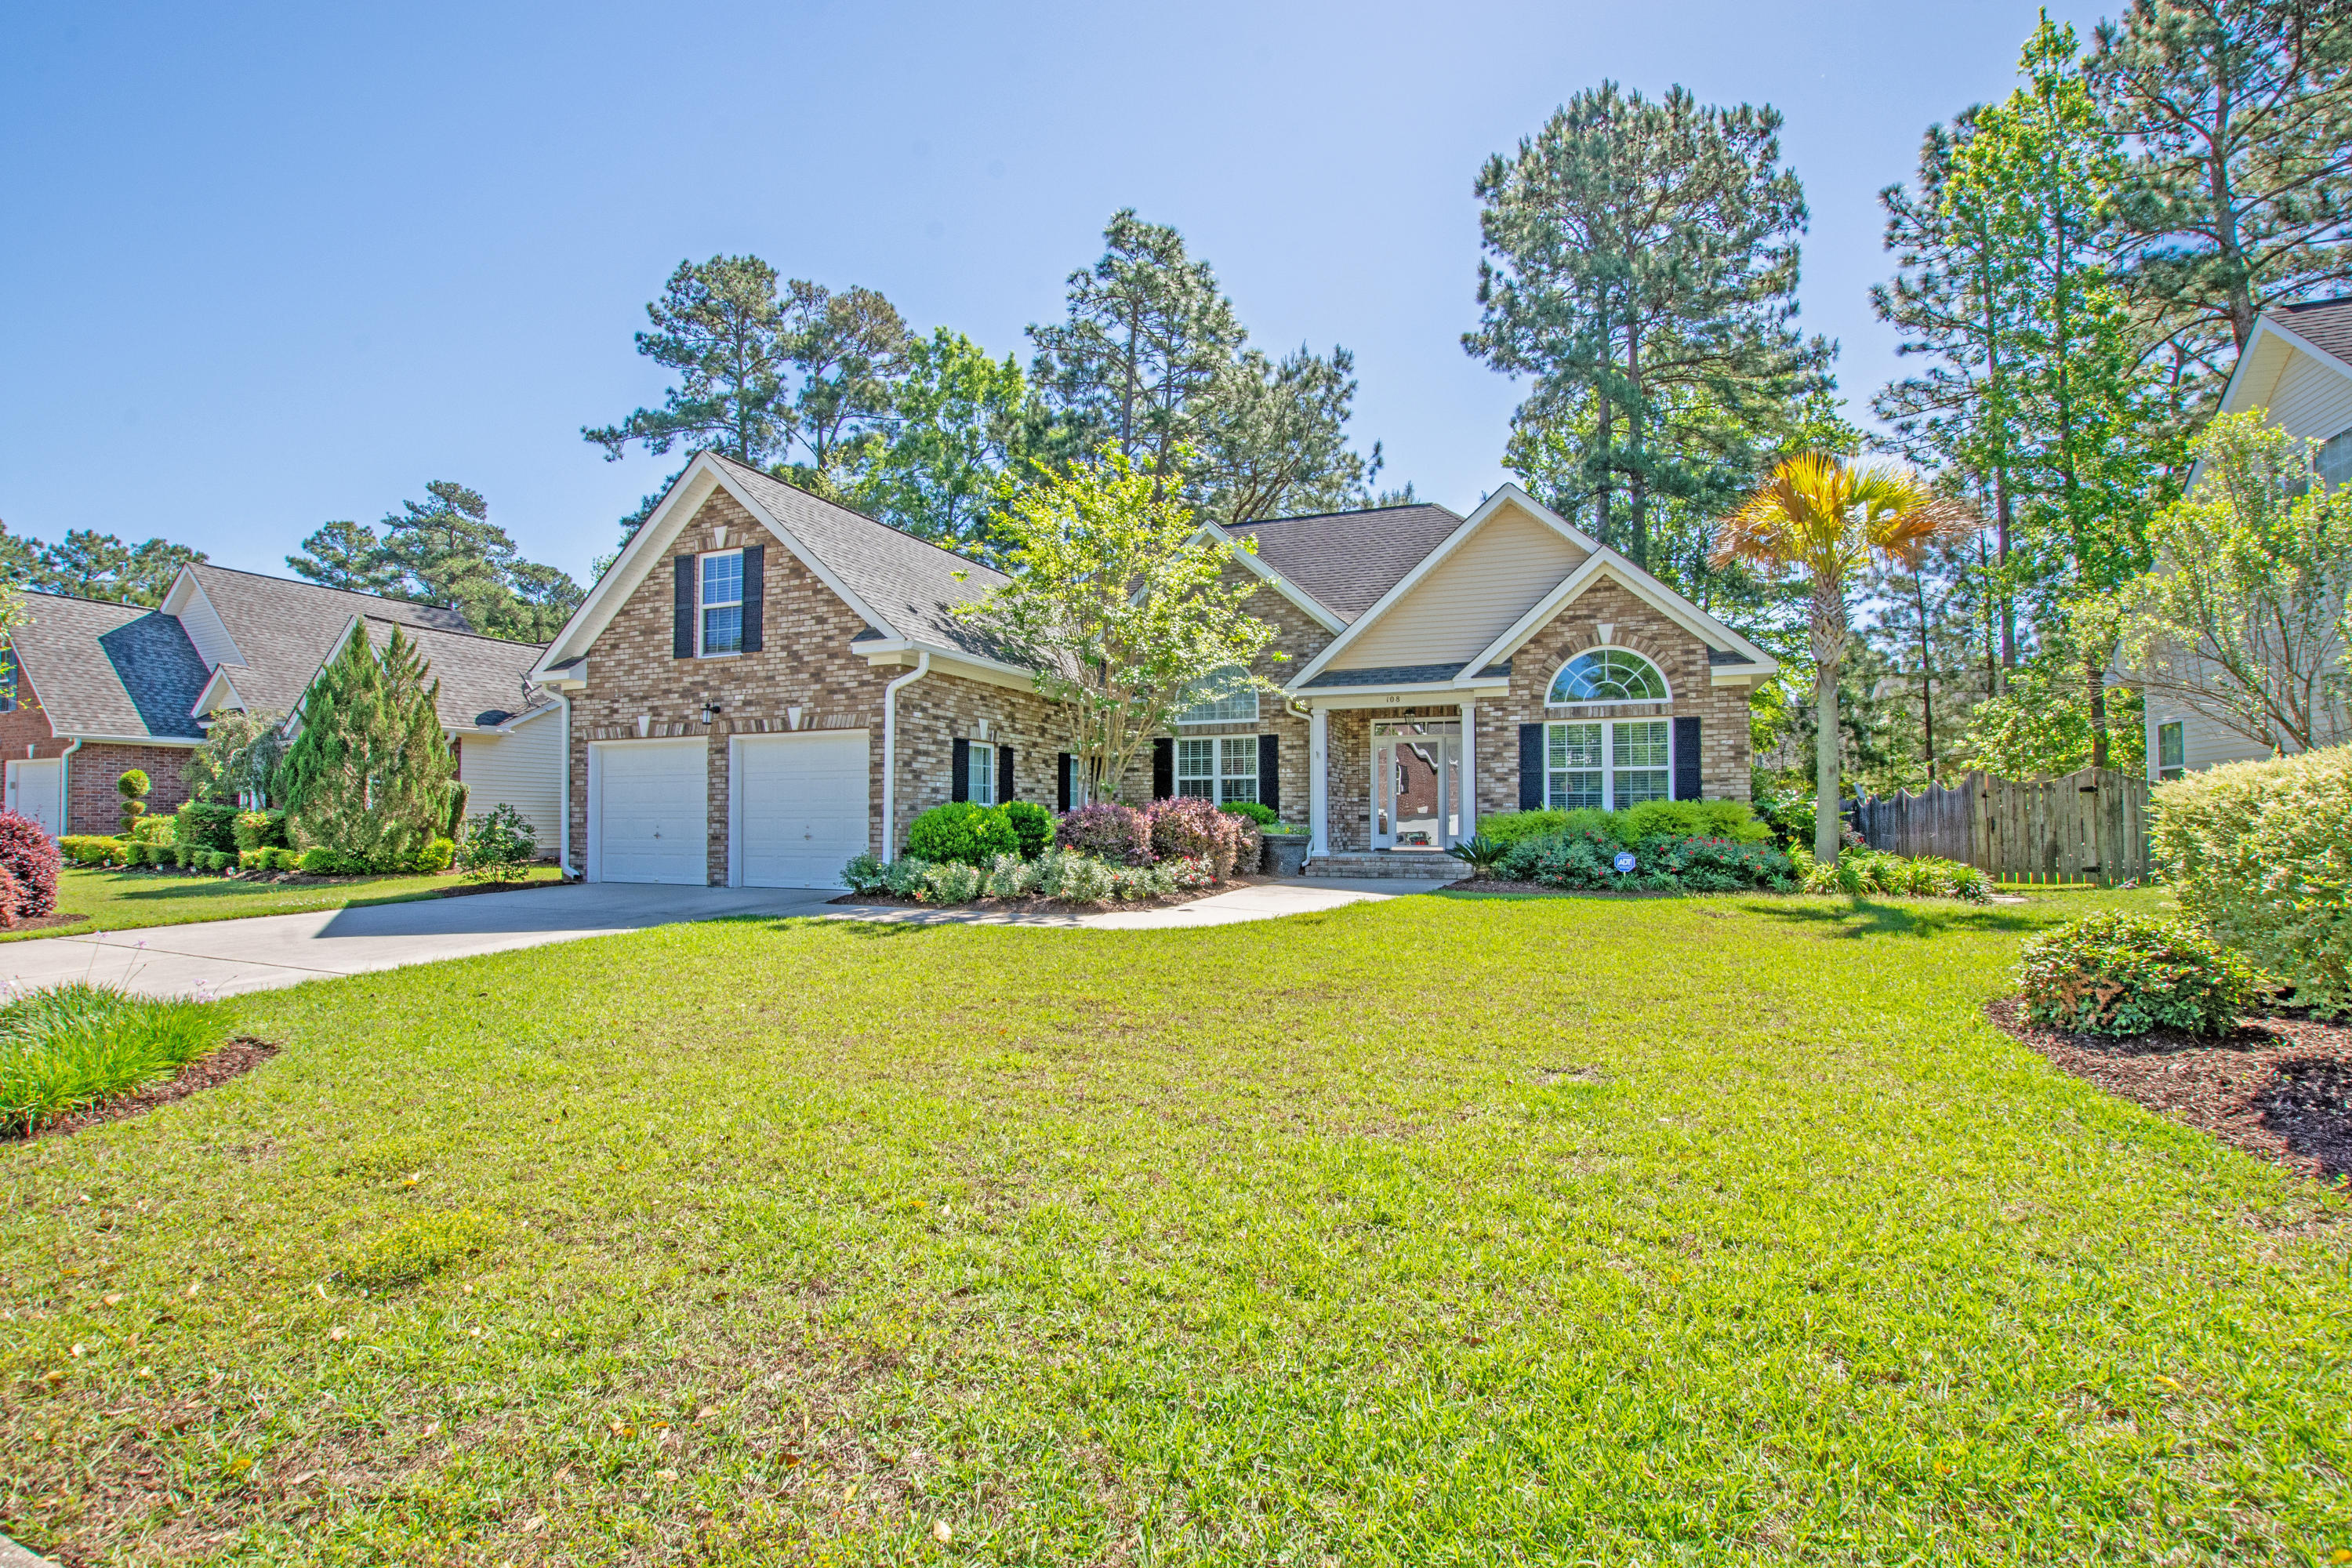 Pine Forest Country Club Homes For Sale - 108 Horseshoe Bay, Summerville, SC - 14